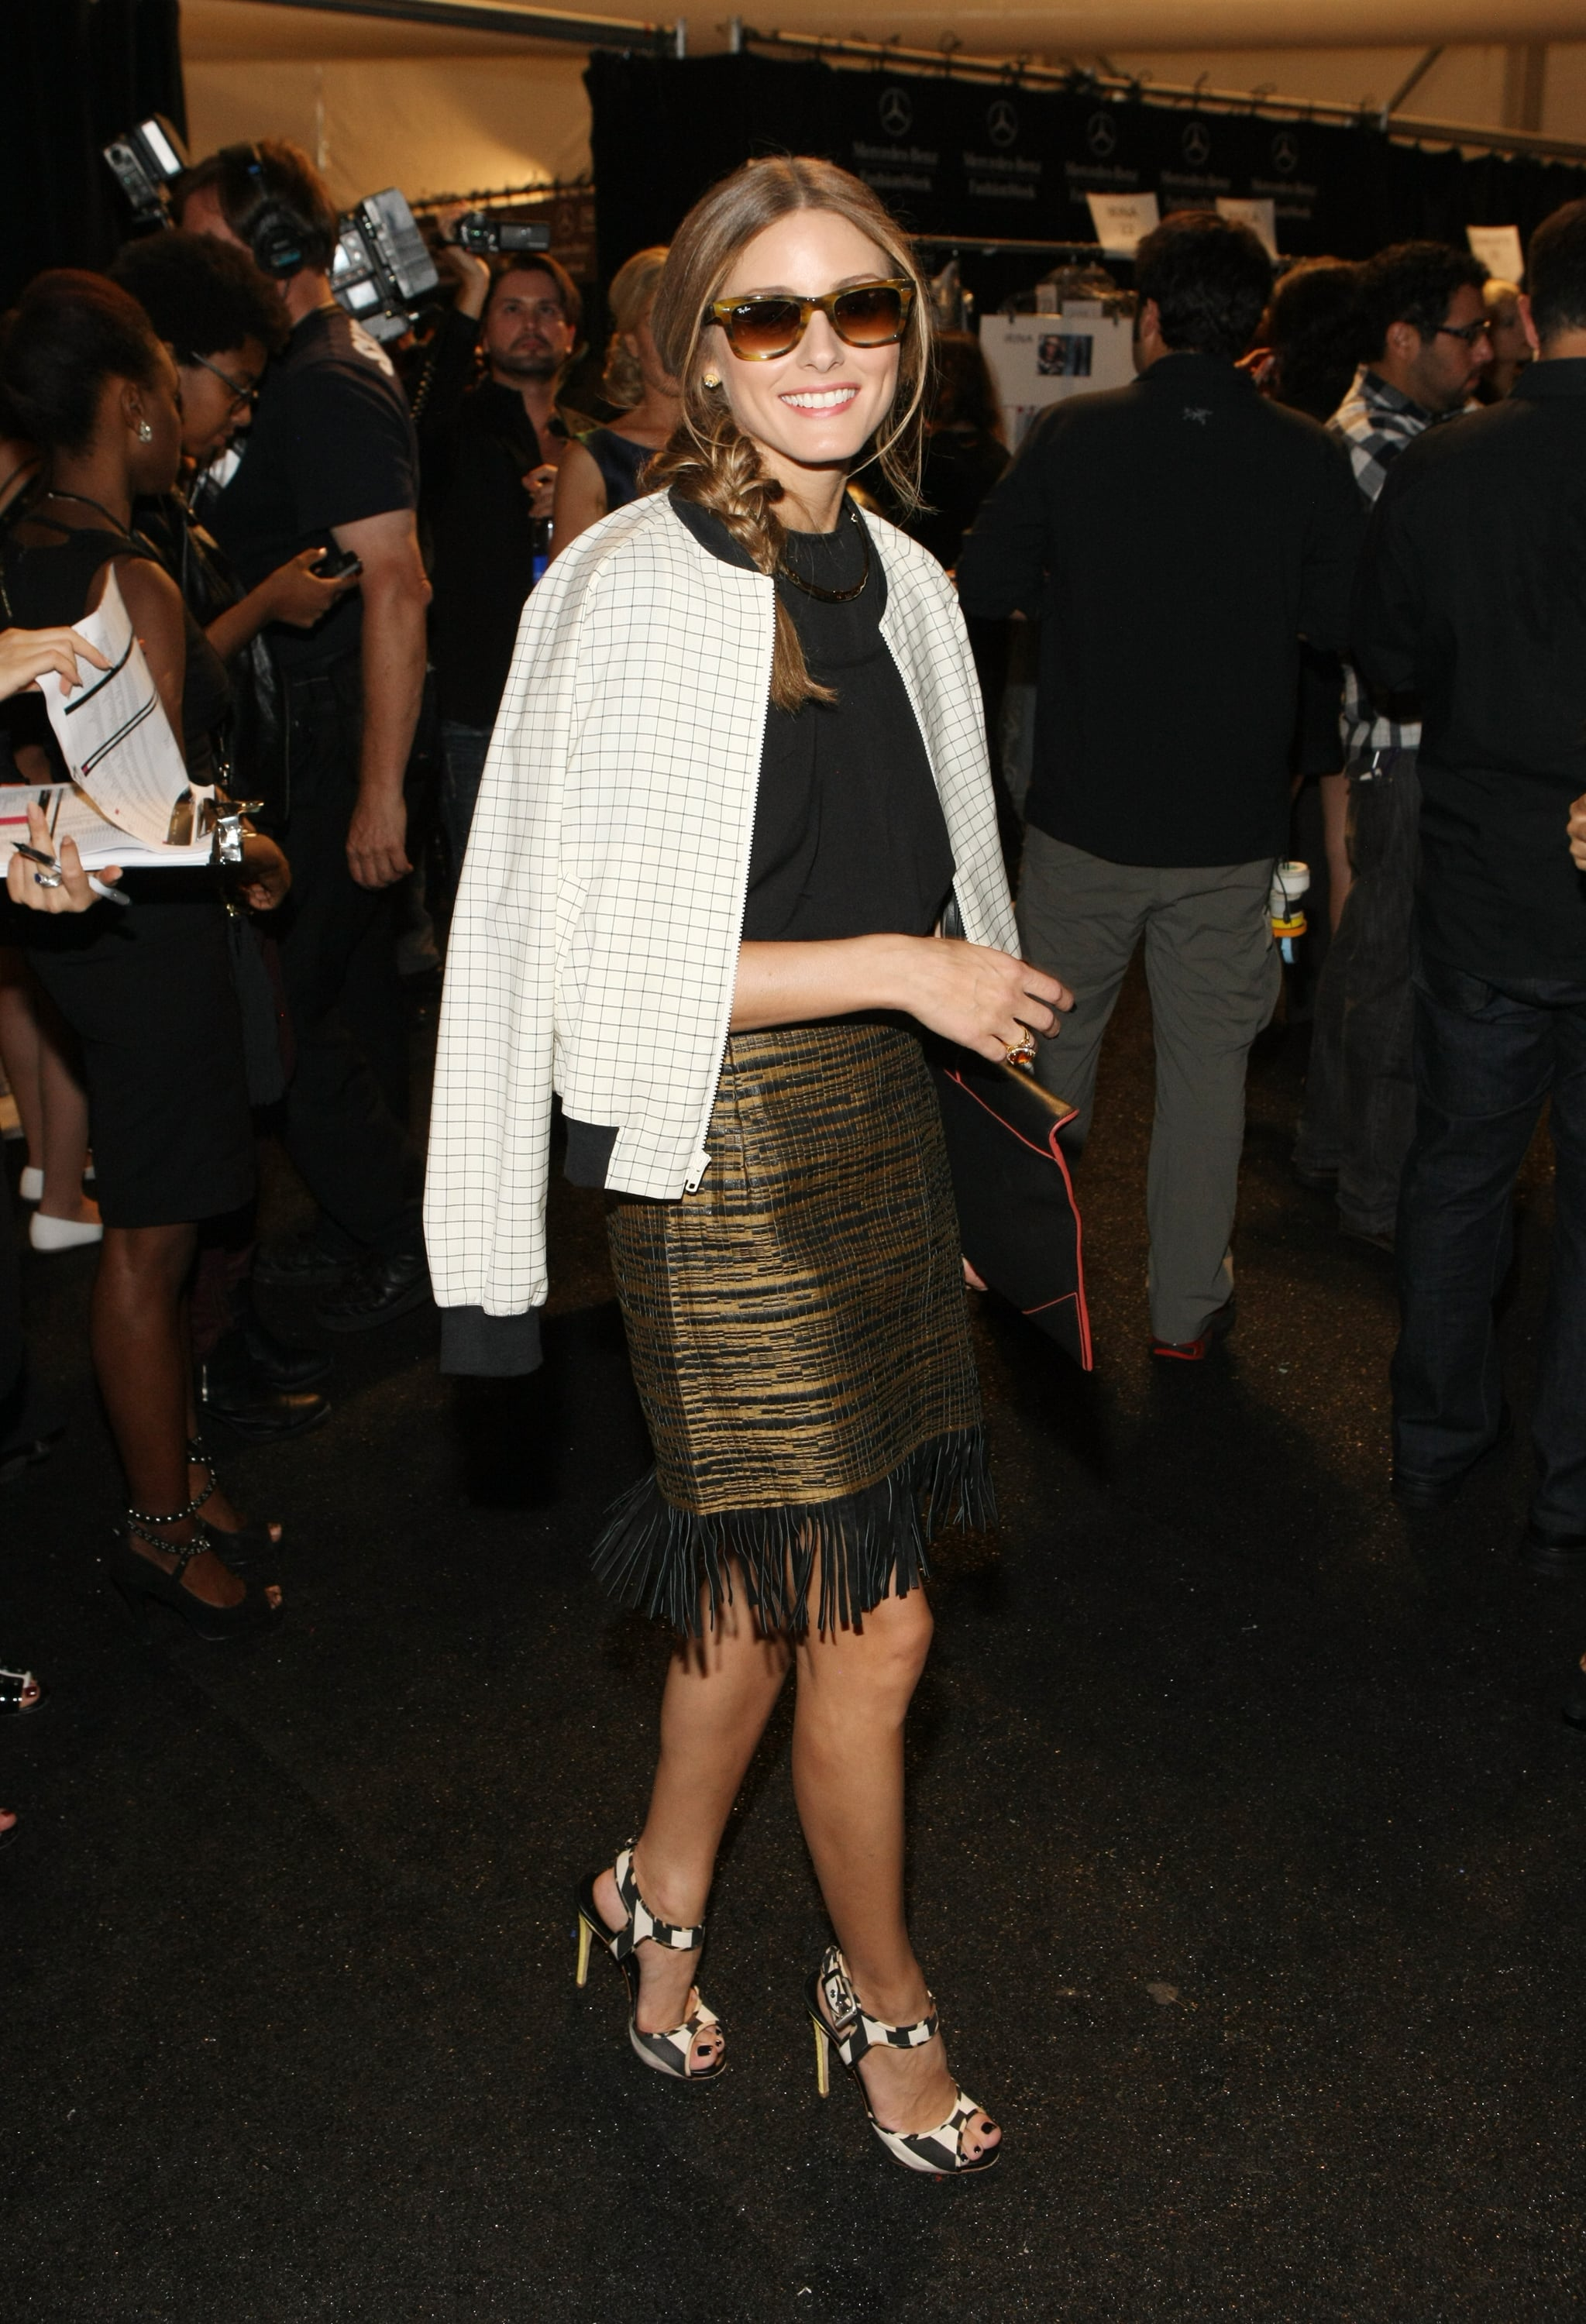 Who would have thought a windowpane baseball jacket would go so well with a fringed metallic skirt and heels?